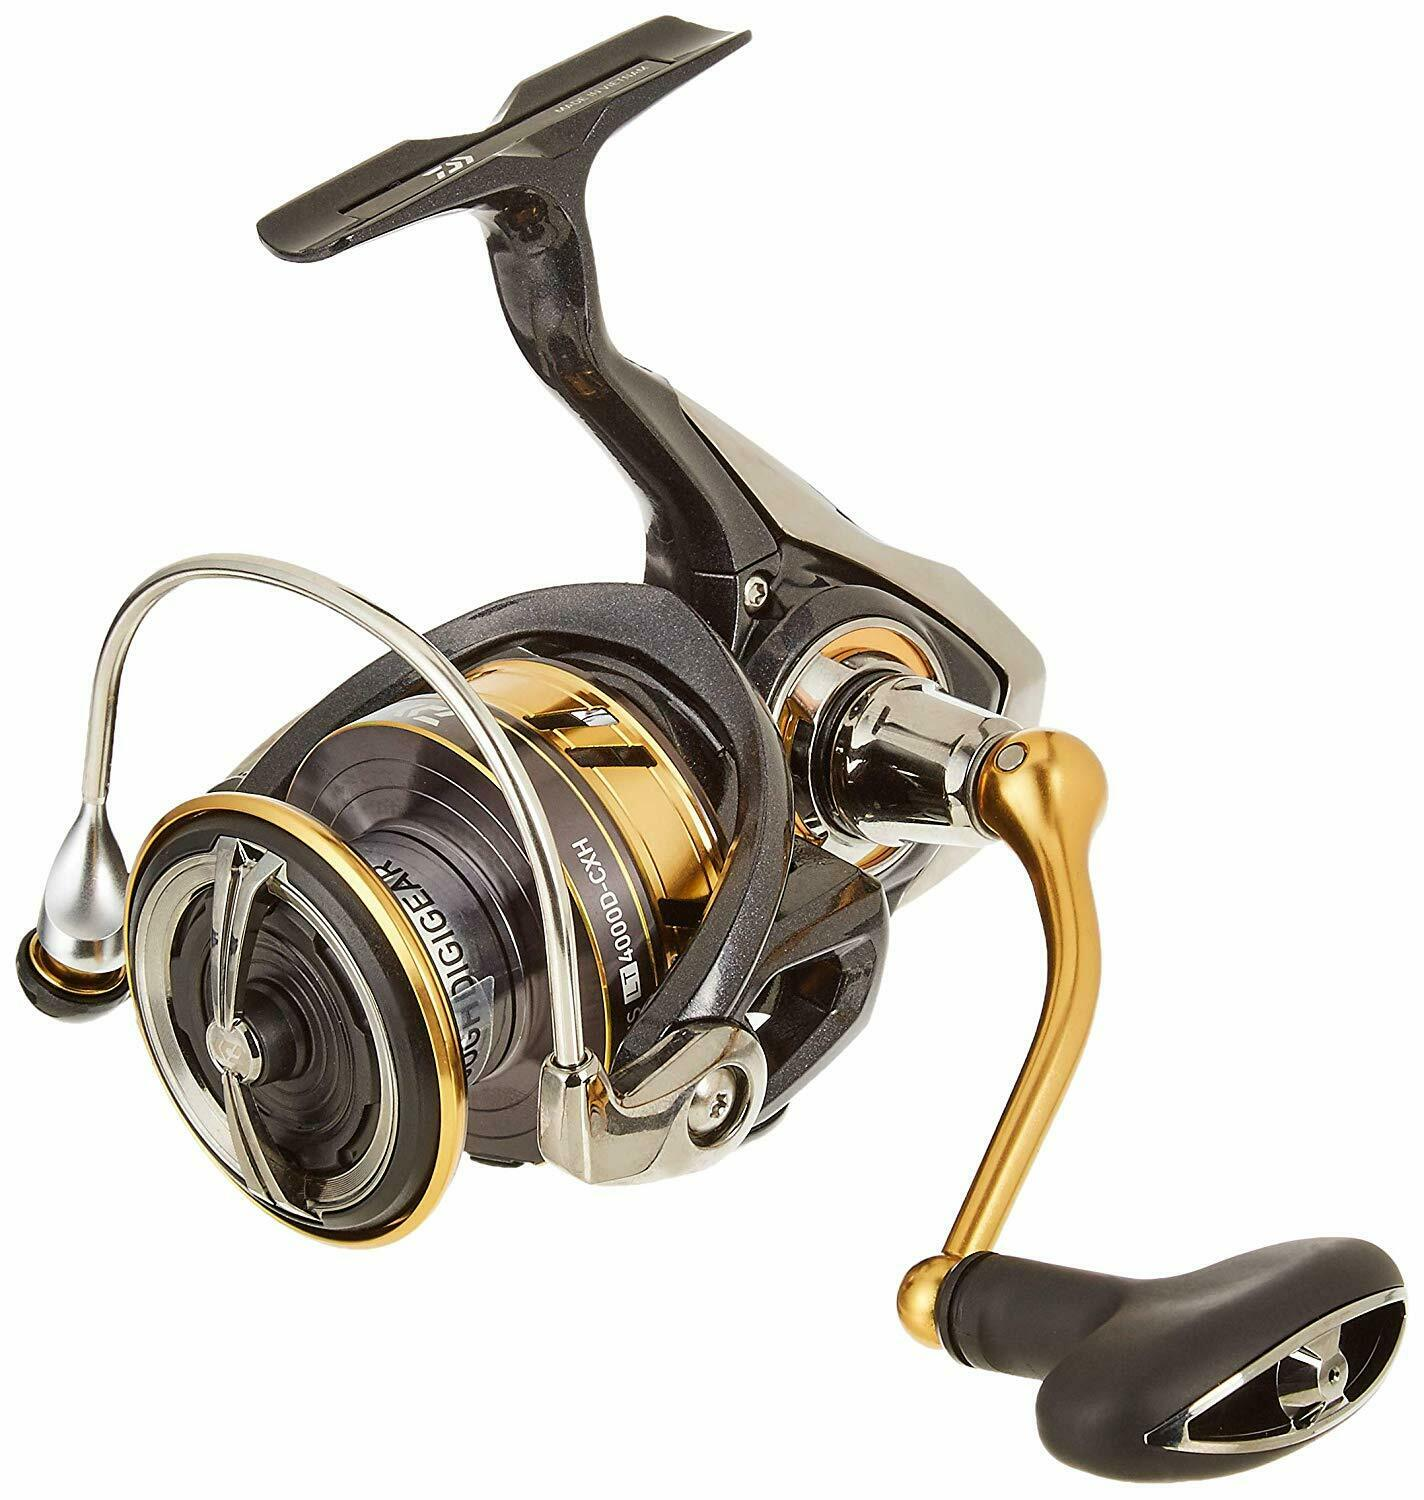 Spinning Reel 18 REGALIS LT4000DCXH DAIWA From Stylish anglers